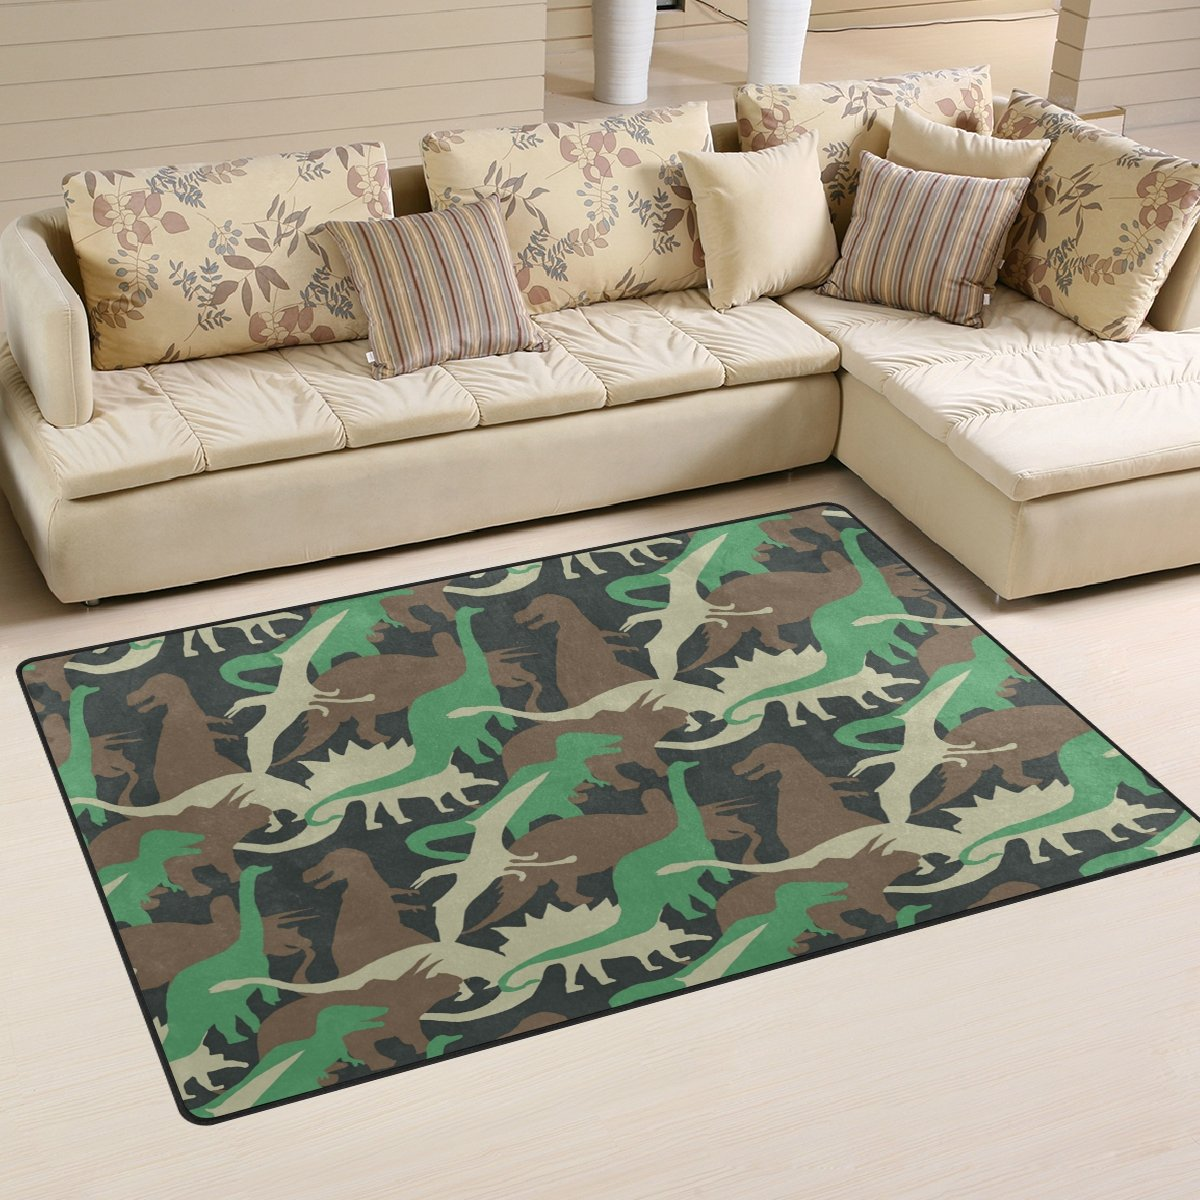 WellLee Area Rug,Camouflage Army Dinosaur Floor Rug Non-slip Doormat for Living Dining Dorm Room Bedroom Decor 31x20 Inch